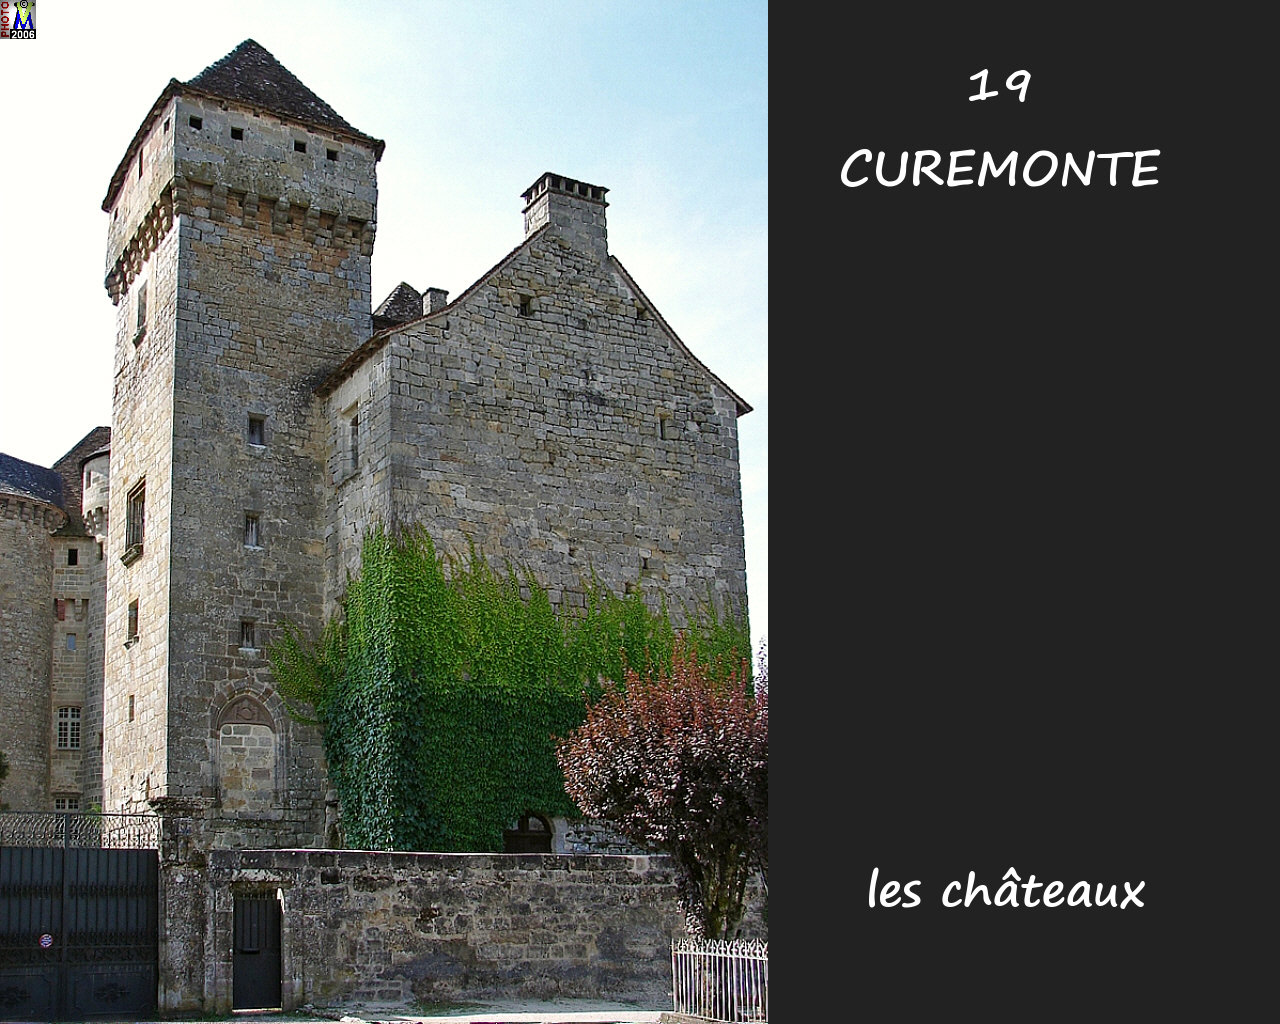 19CUREMONTE_chateau_120.jpg